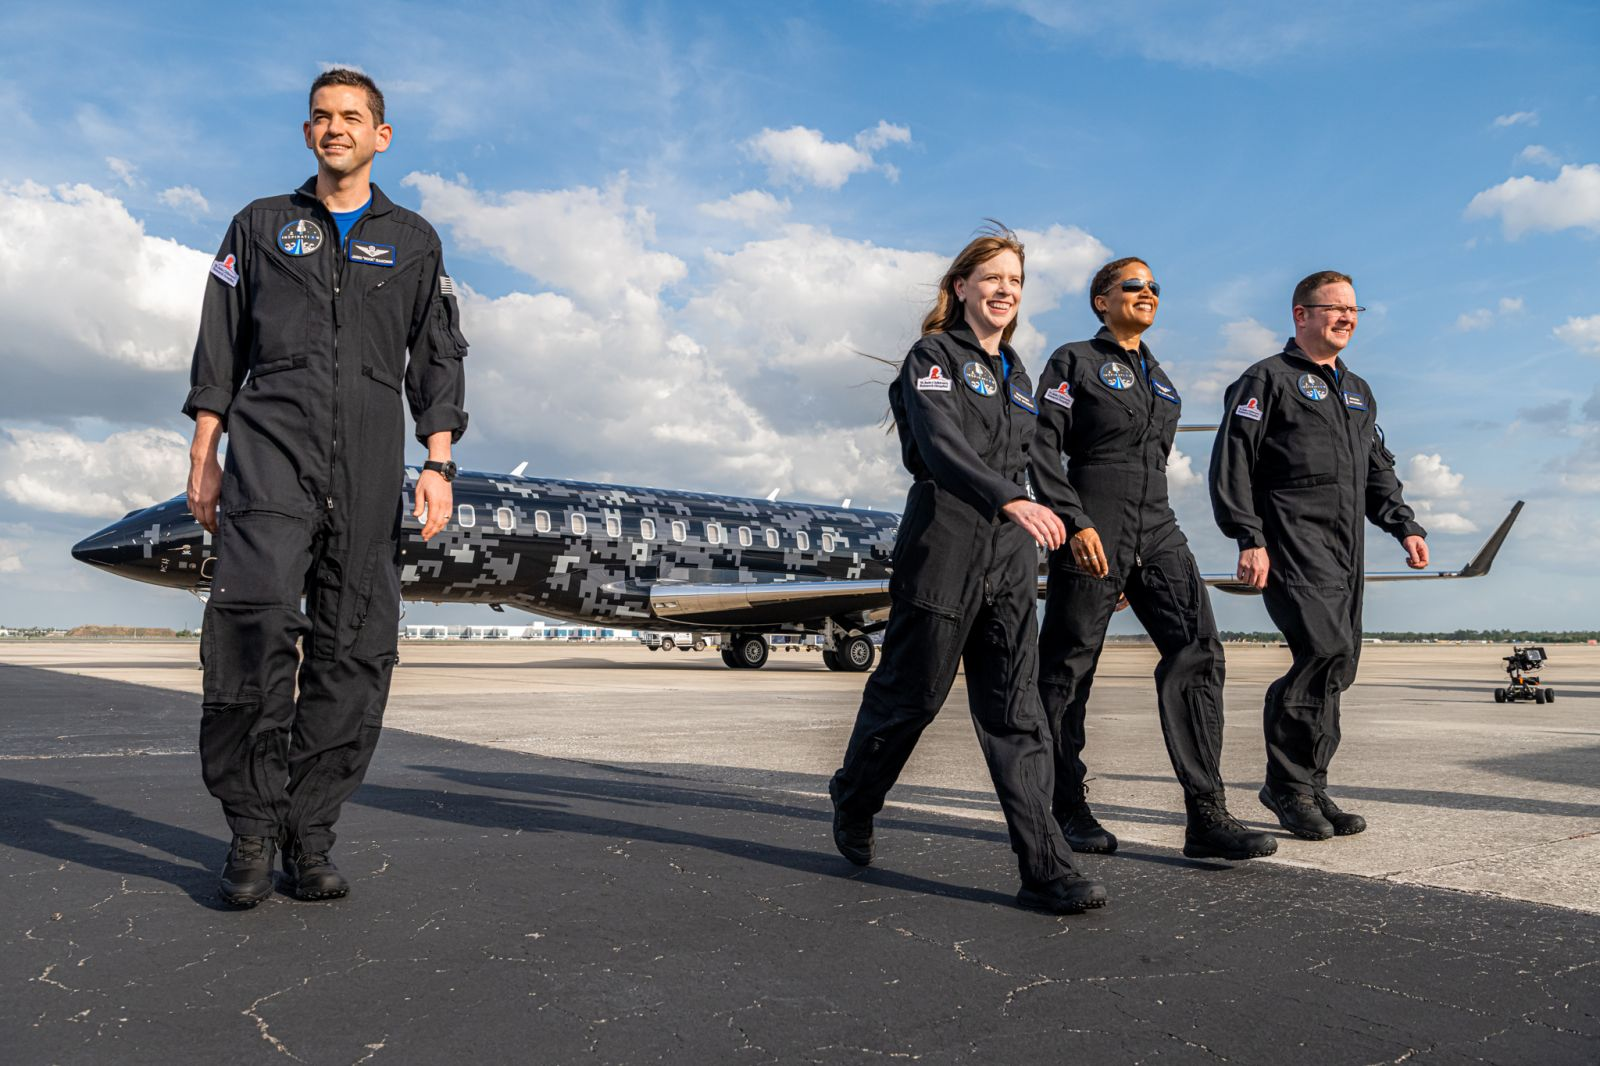 The Inspiration4 crew in Florida in March 2021. From left to right: Jared Isaacman, Hayley Arceneaux, Sian Proctor and Chris Sembroski. Credit: Inspiration4 / John Kraus